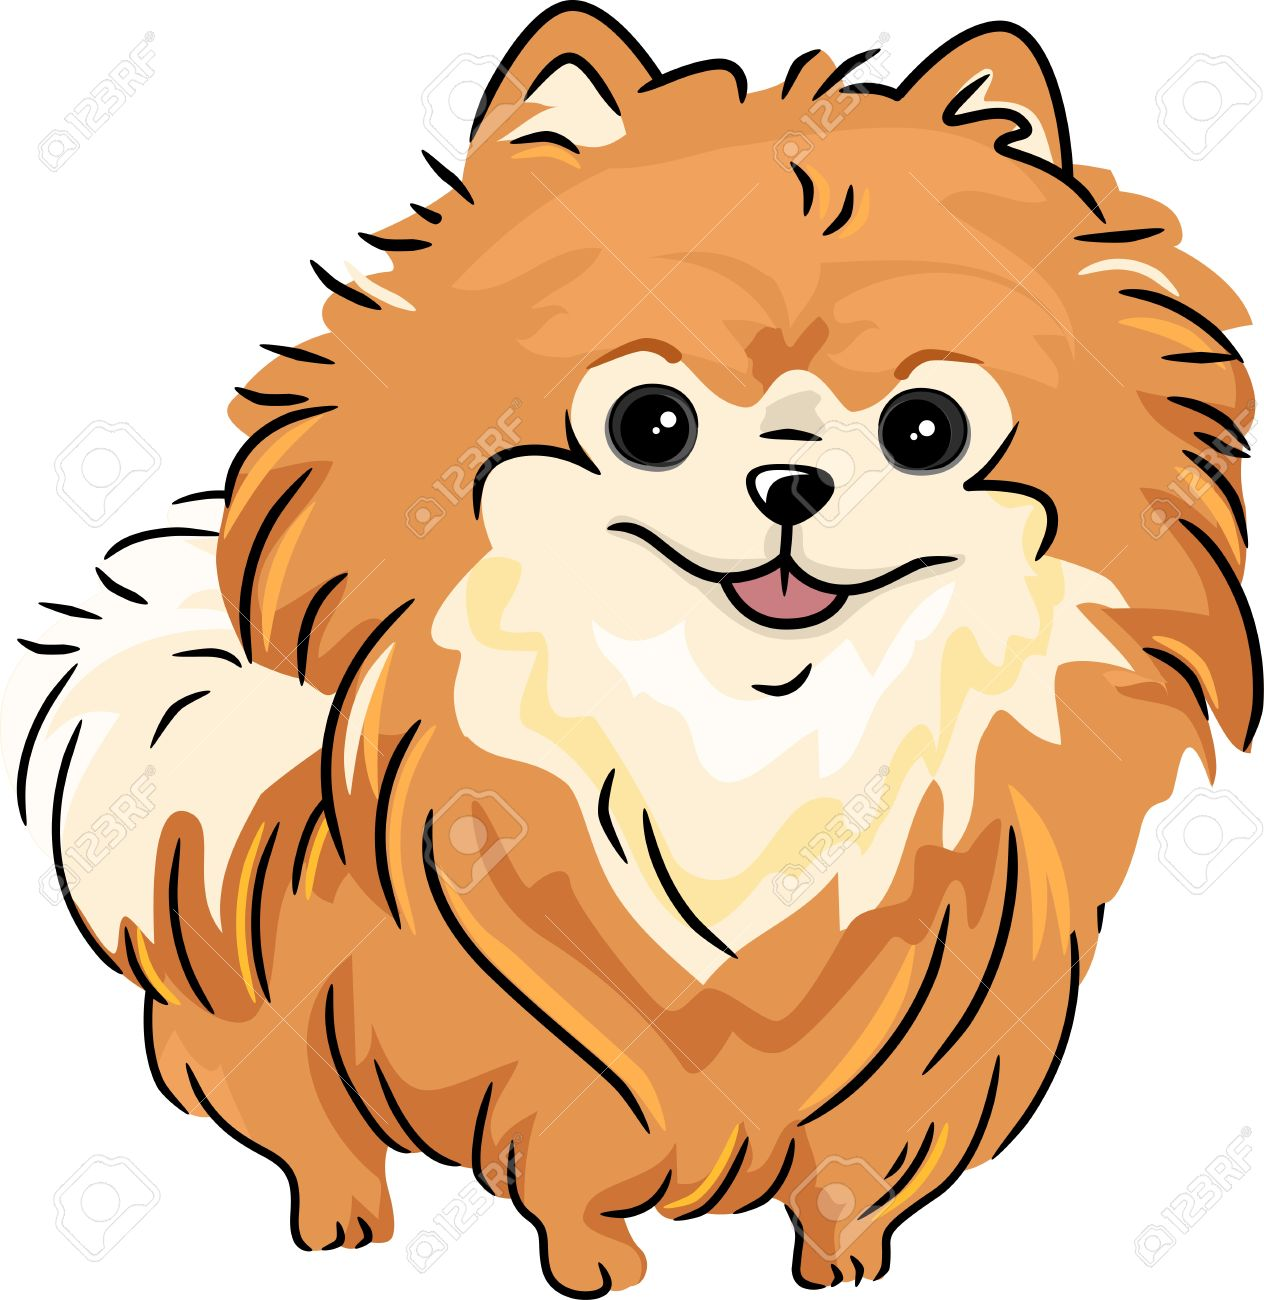 Illustration Featuring A Pomeranian Stock Photo Picture And Royalty Free Image Image 13898794